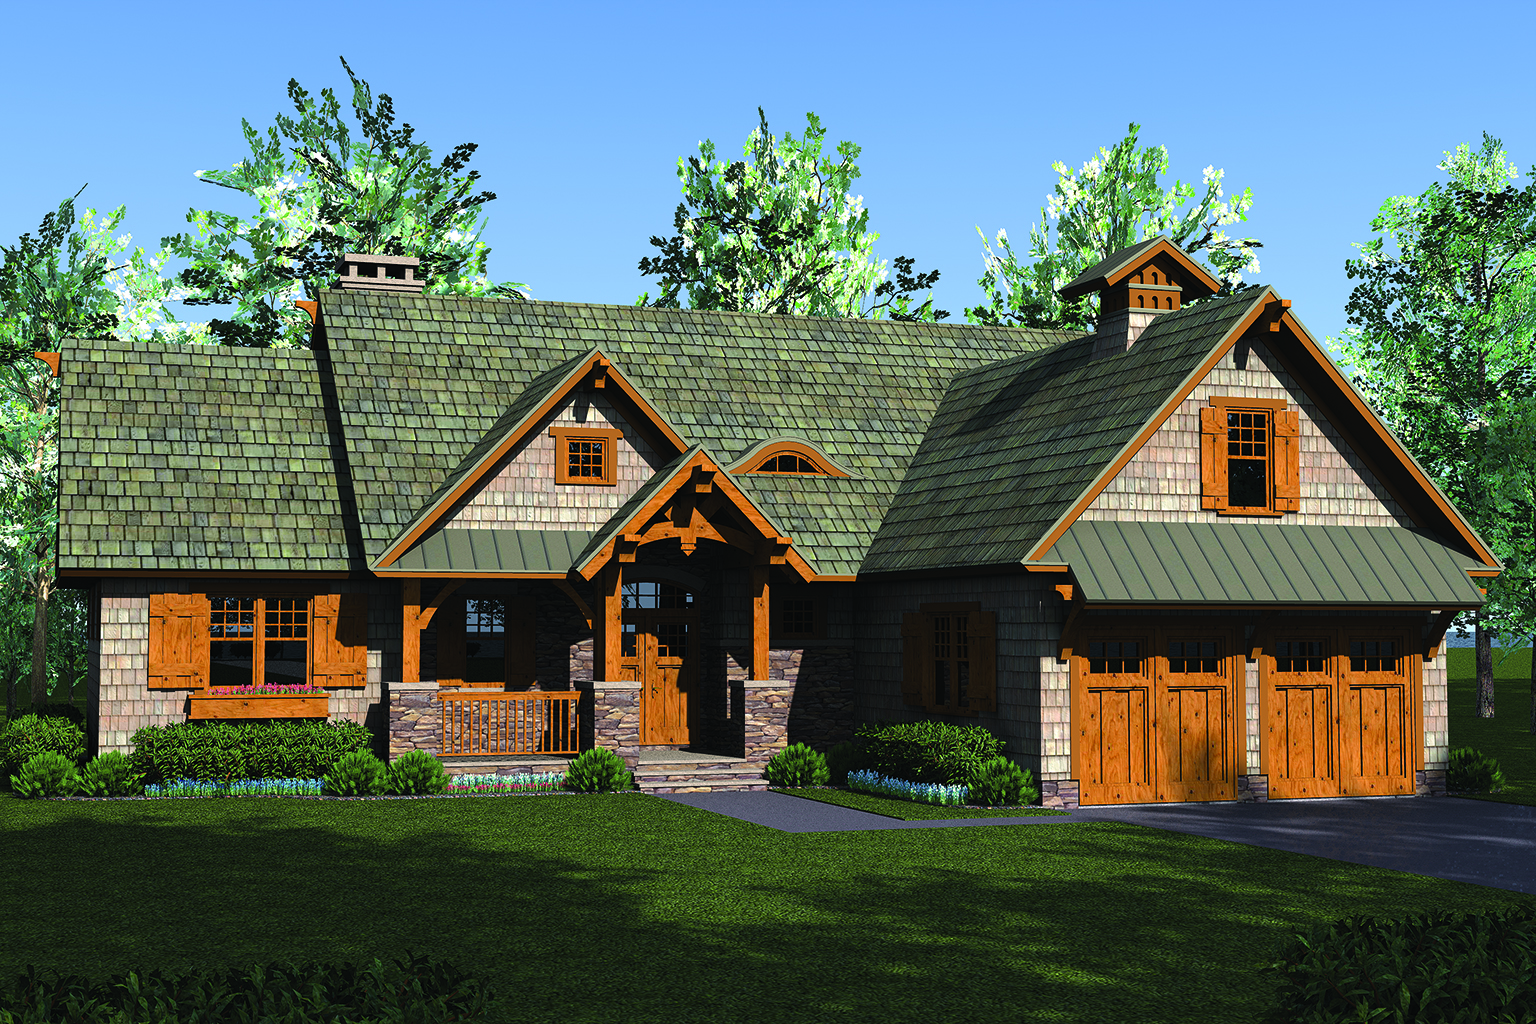 Craftsman house plan 180 1049 3 bedrm 2074 sq ft home for 5 bedroom craftsman house plans